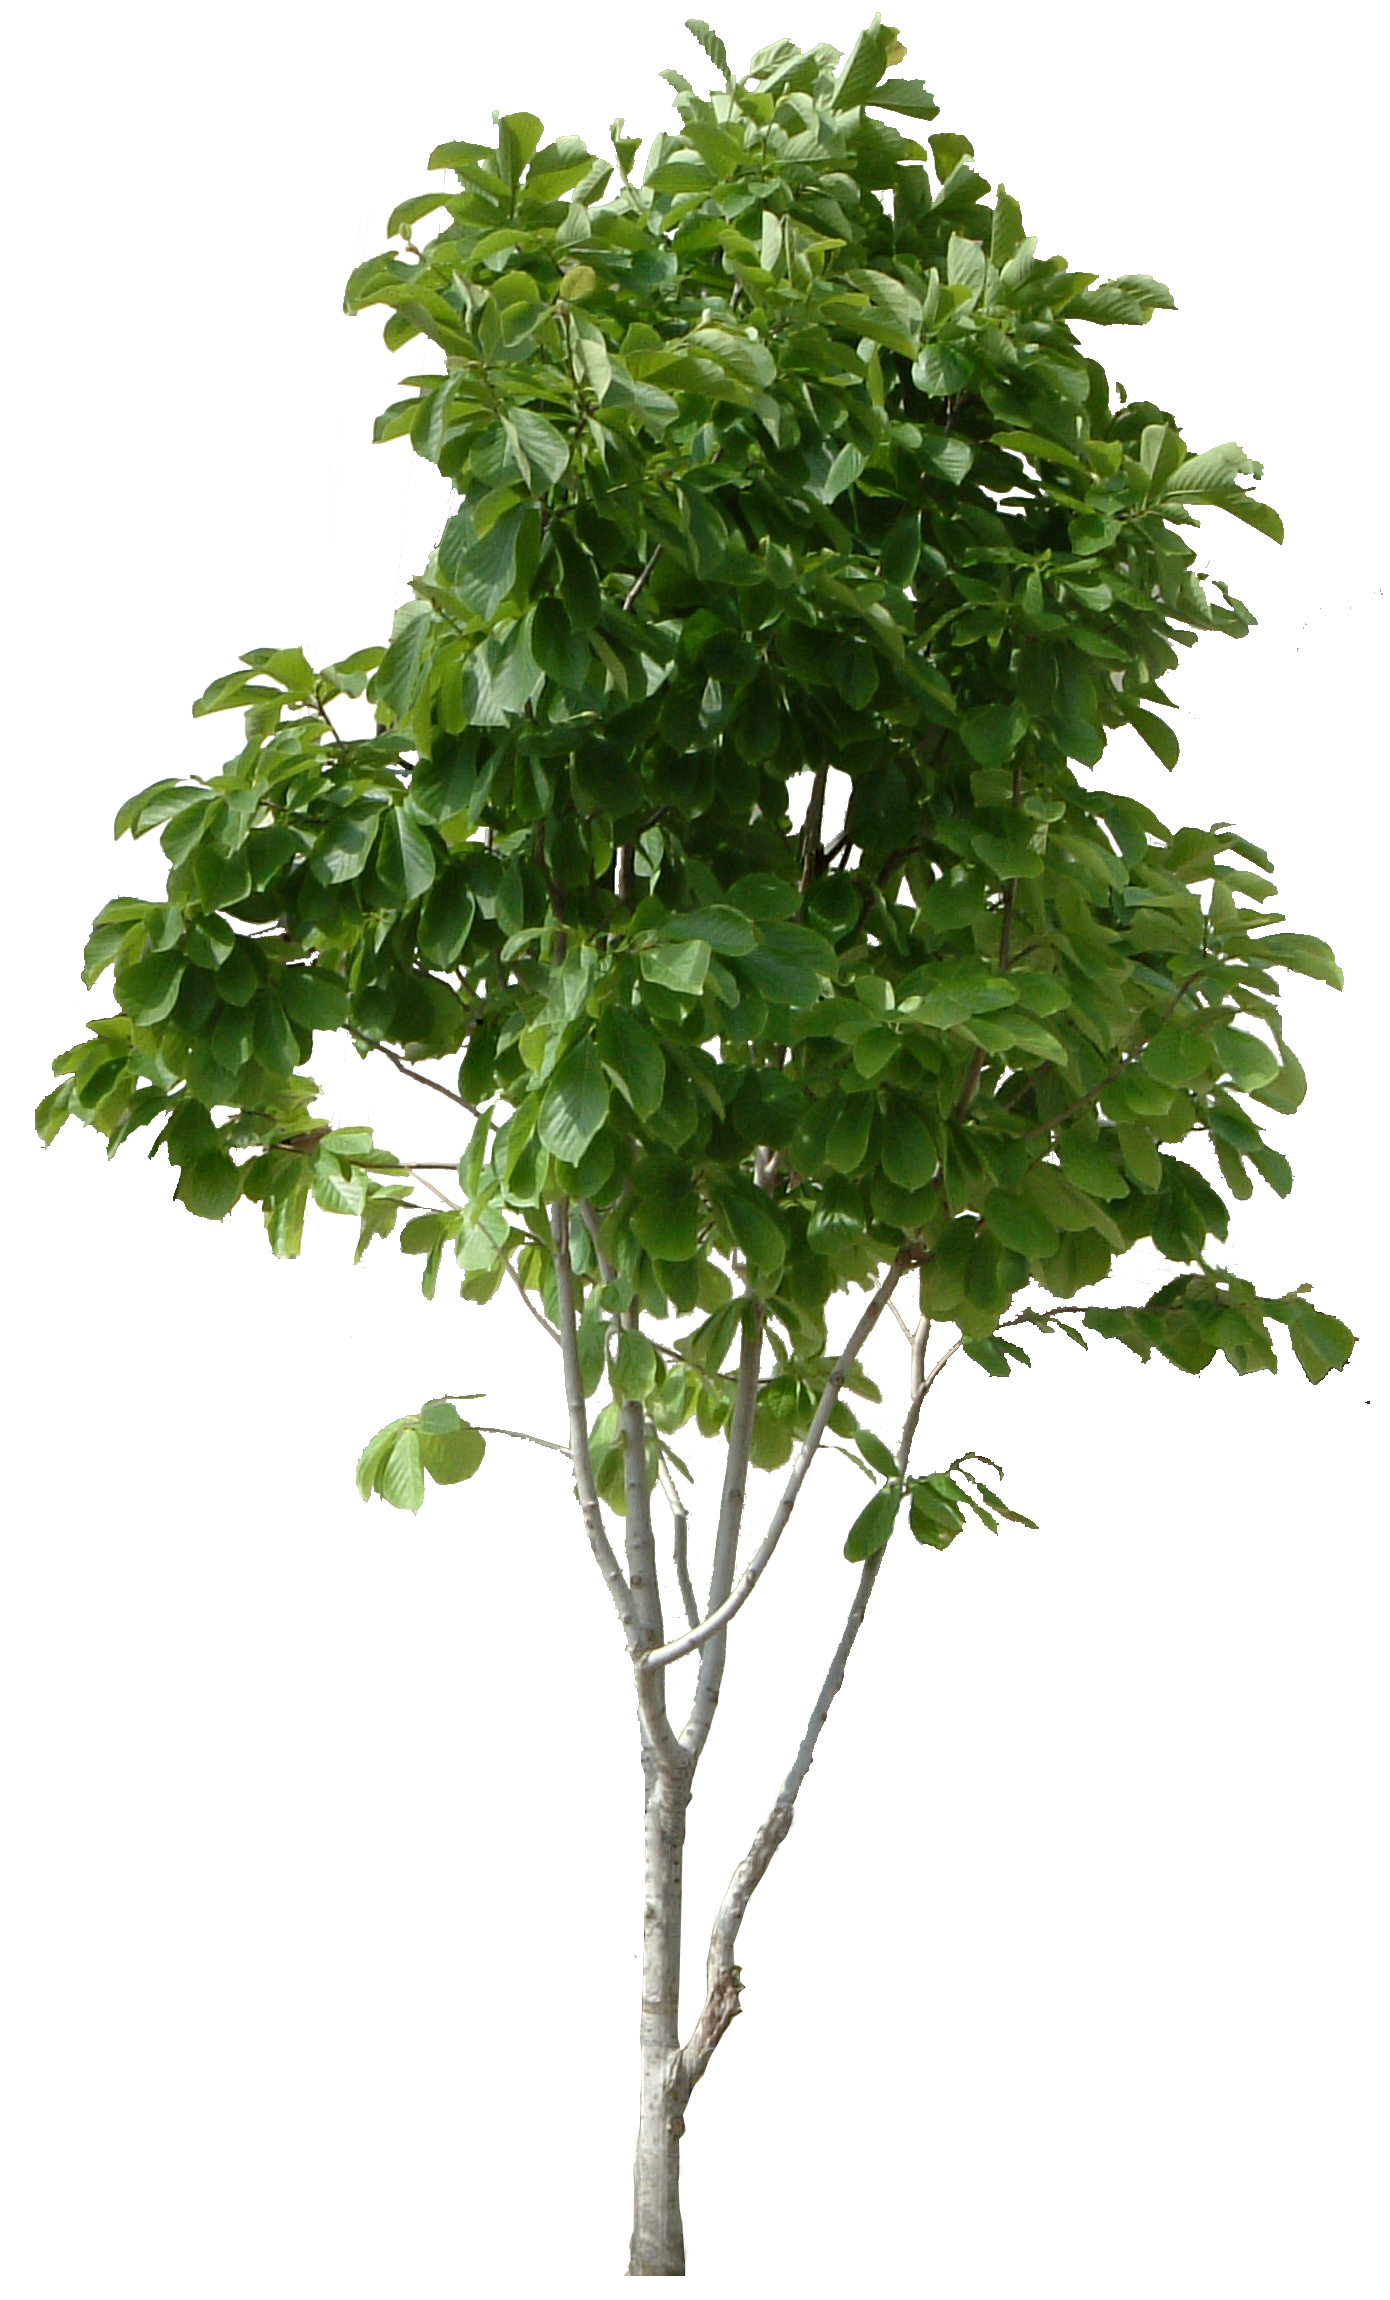 Plant Wood Tree PNG Image